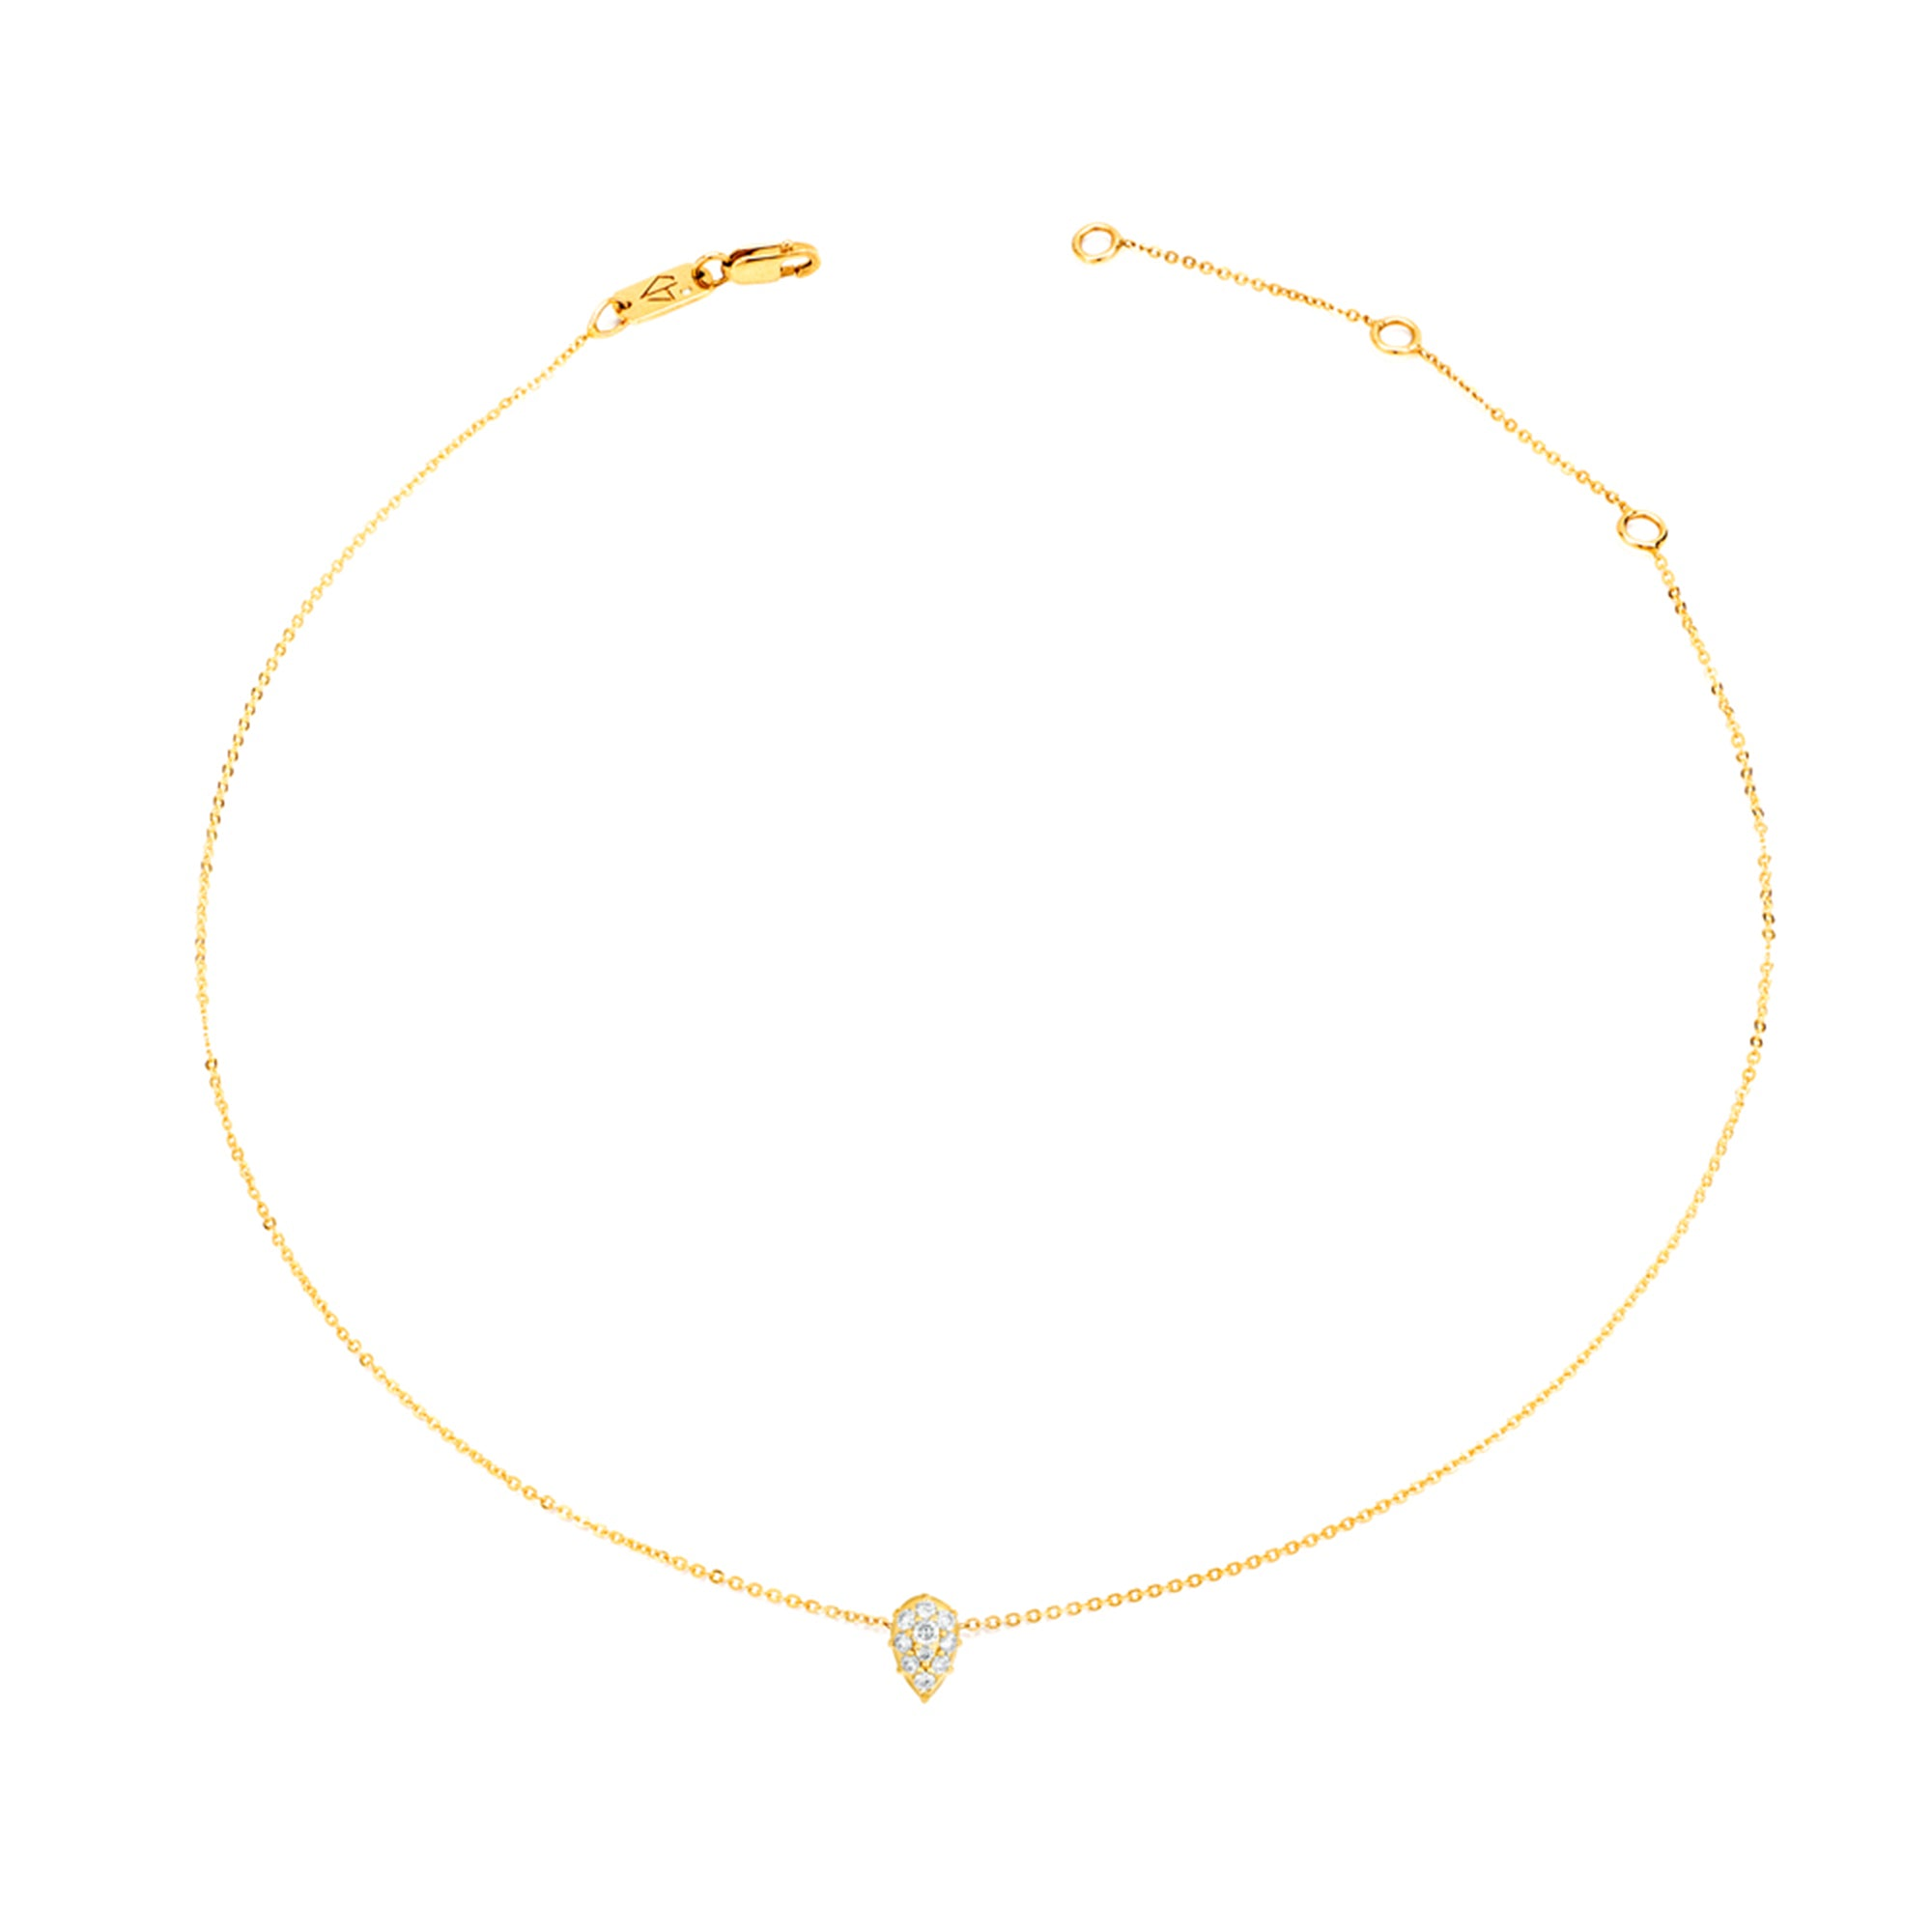 Gold & White Diamond Venus Necklace by Carbon & Hyde for Broken English Jewelry